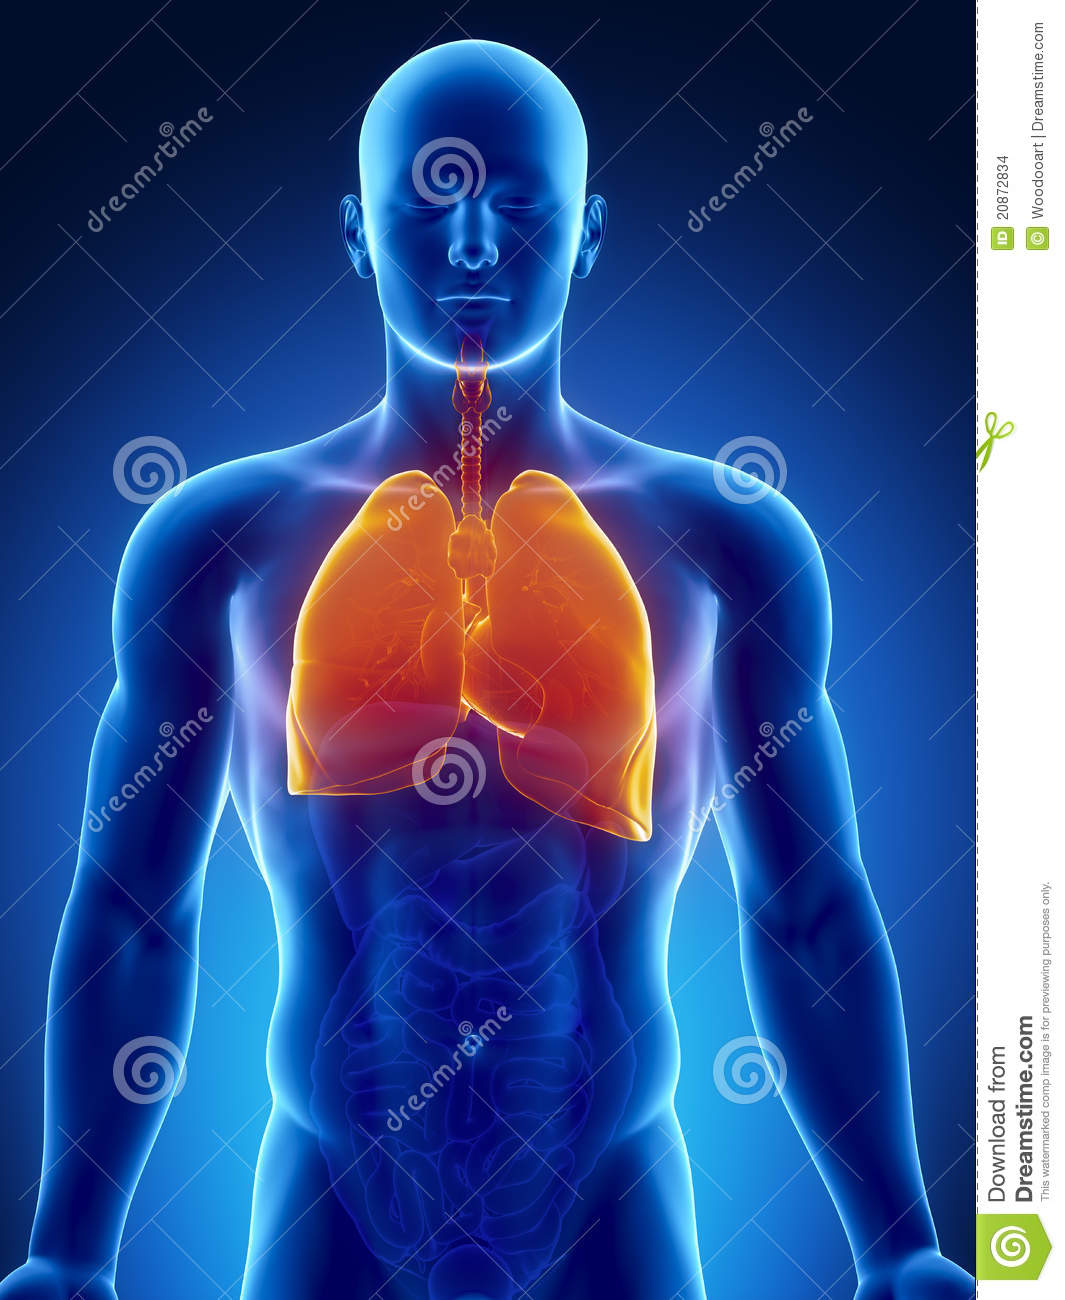 Human Thorax Organs With Lungs And Heart Stock